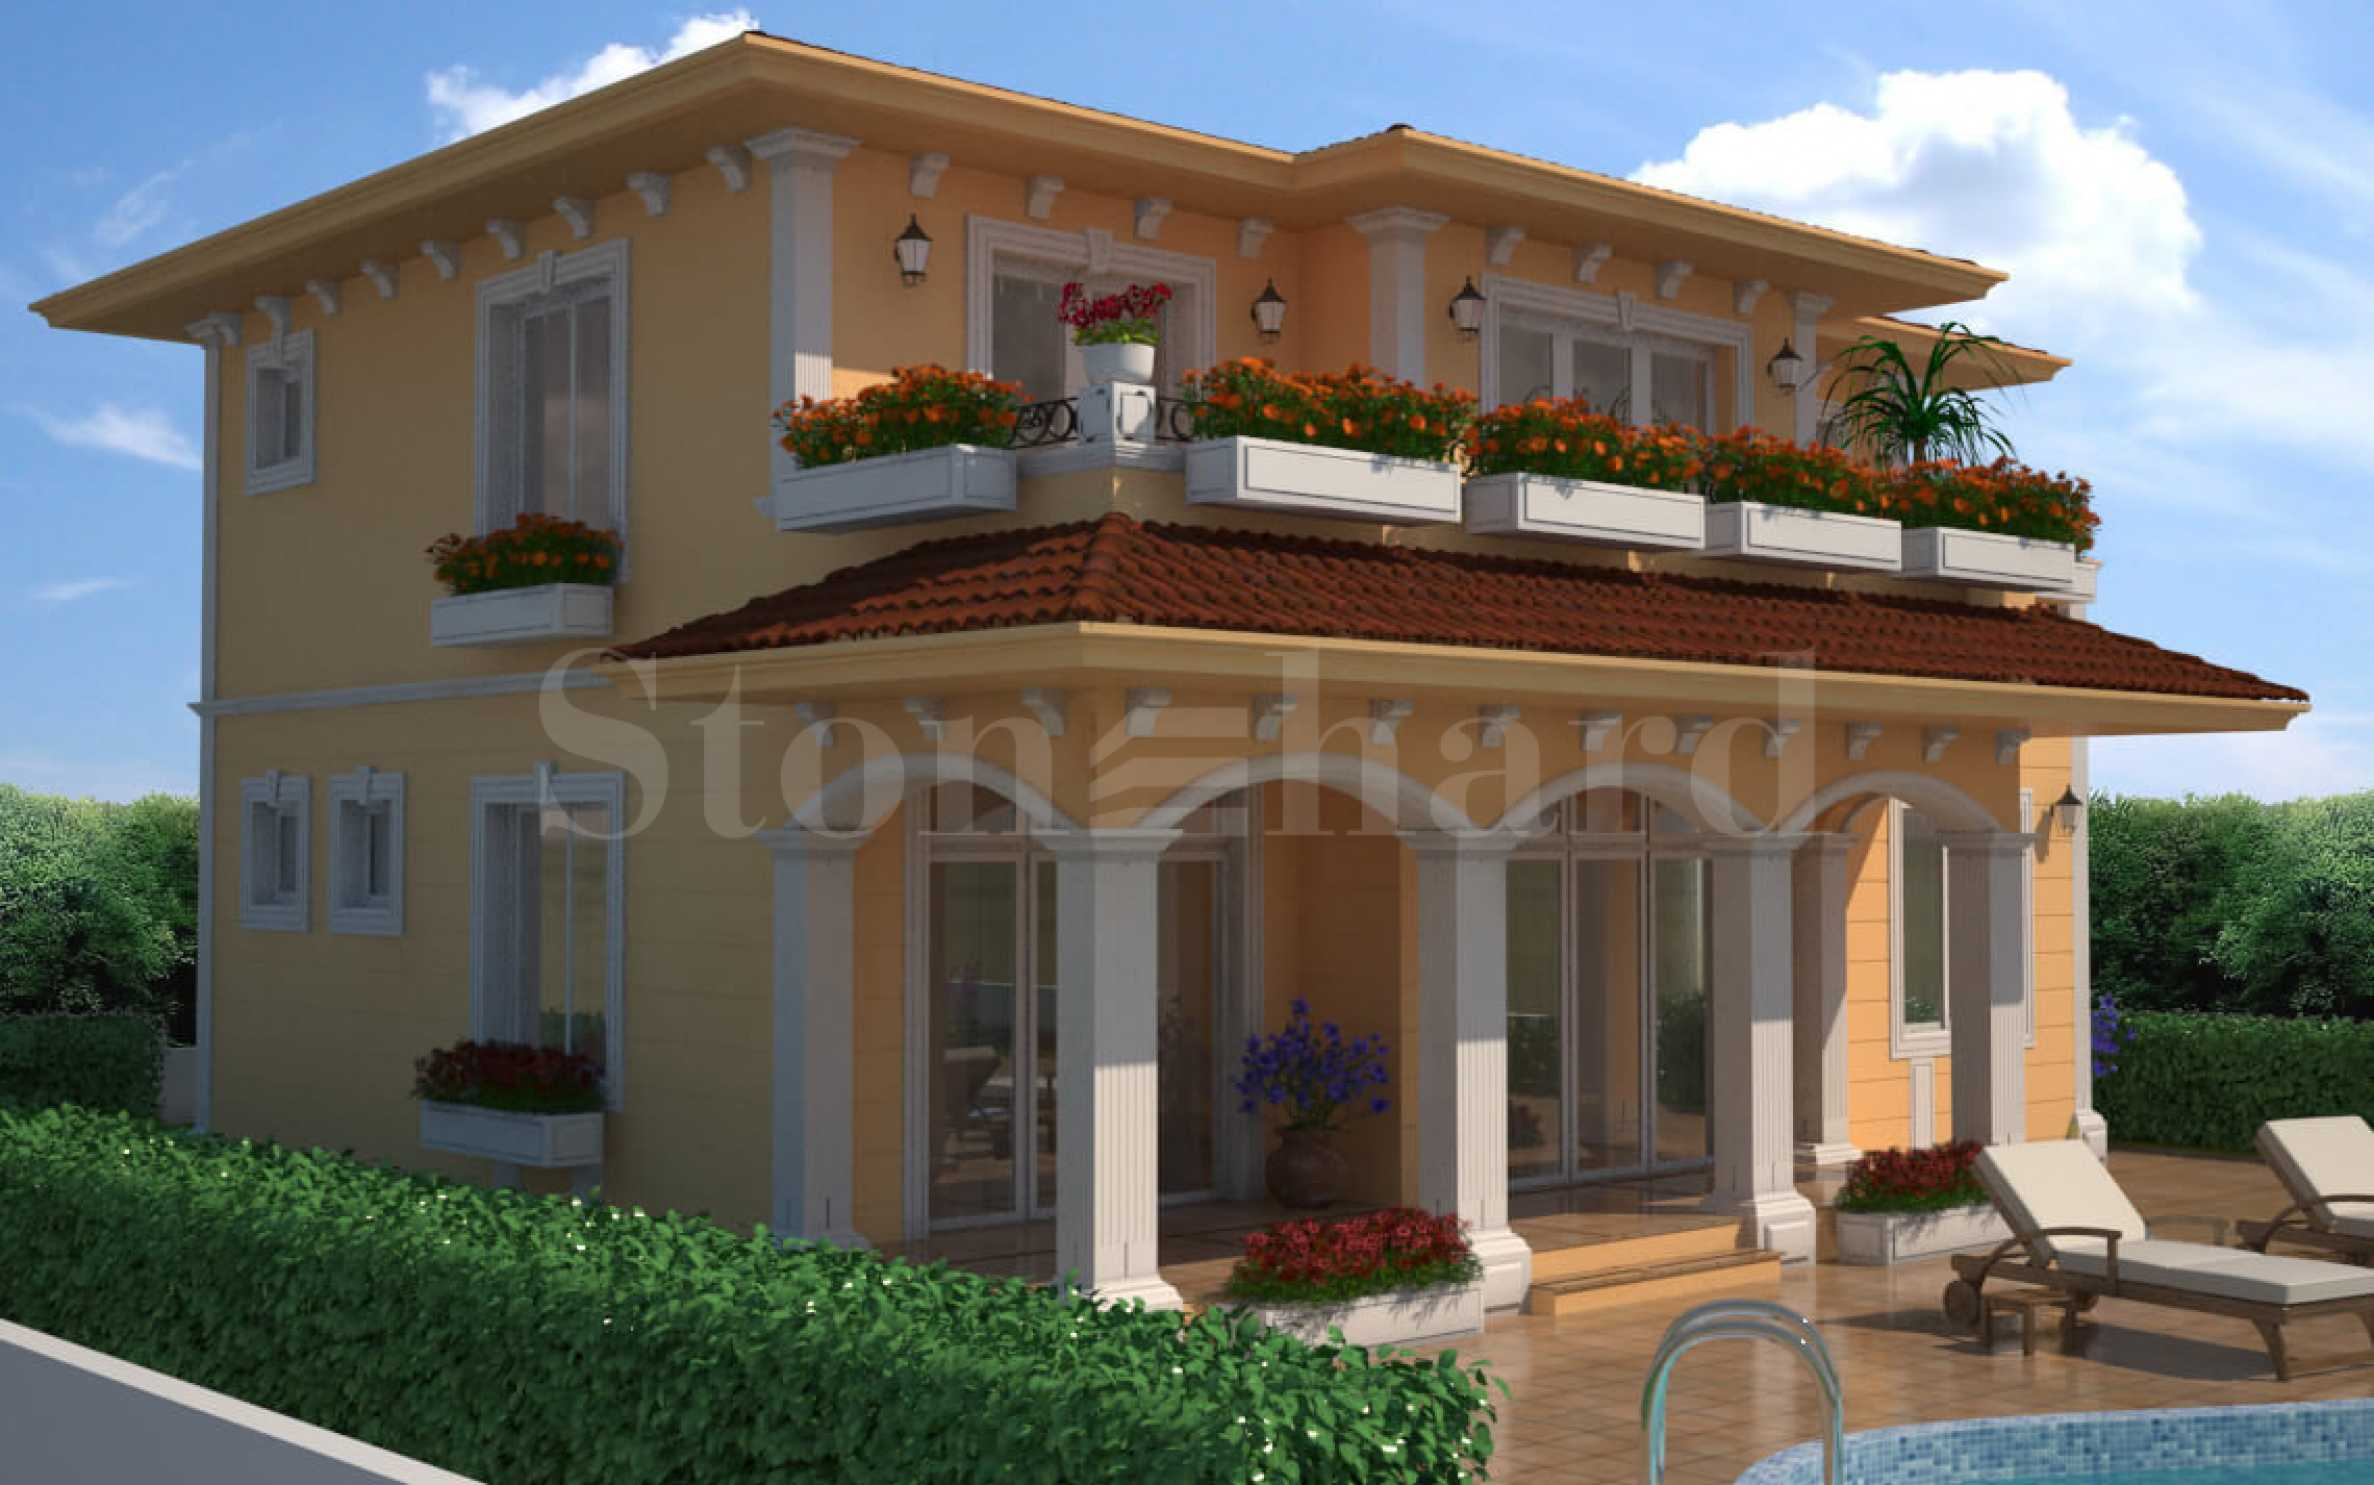 Villas for sale in a new complex in Kableshkovo, near Pomorie2 - Stonehard